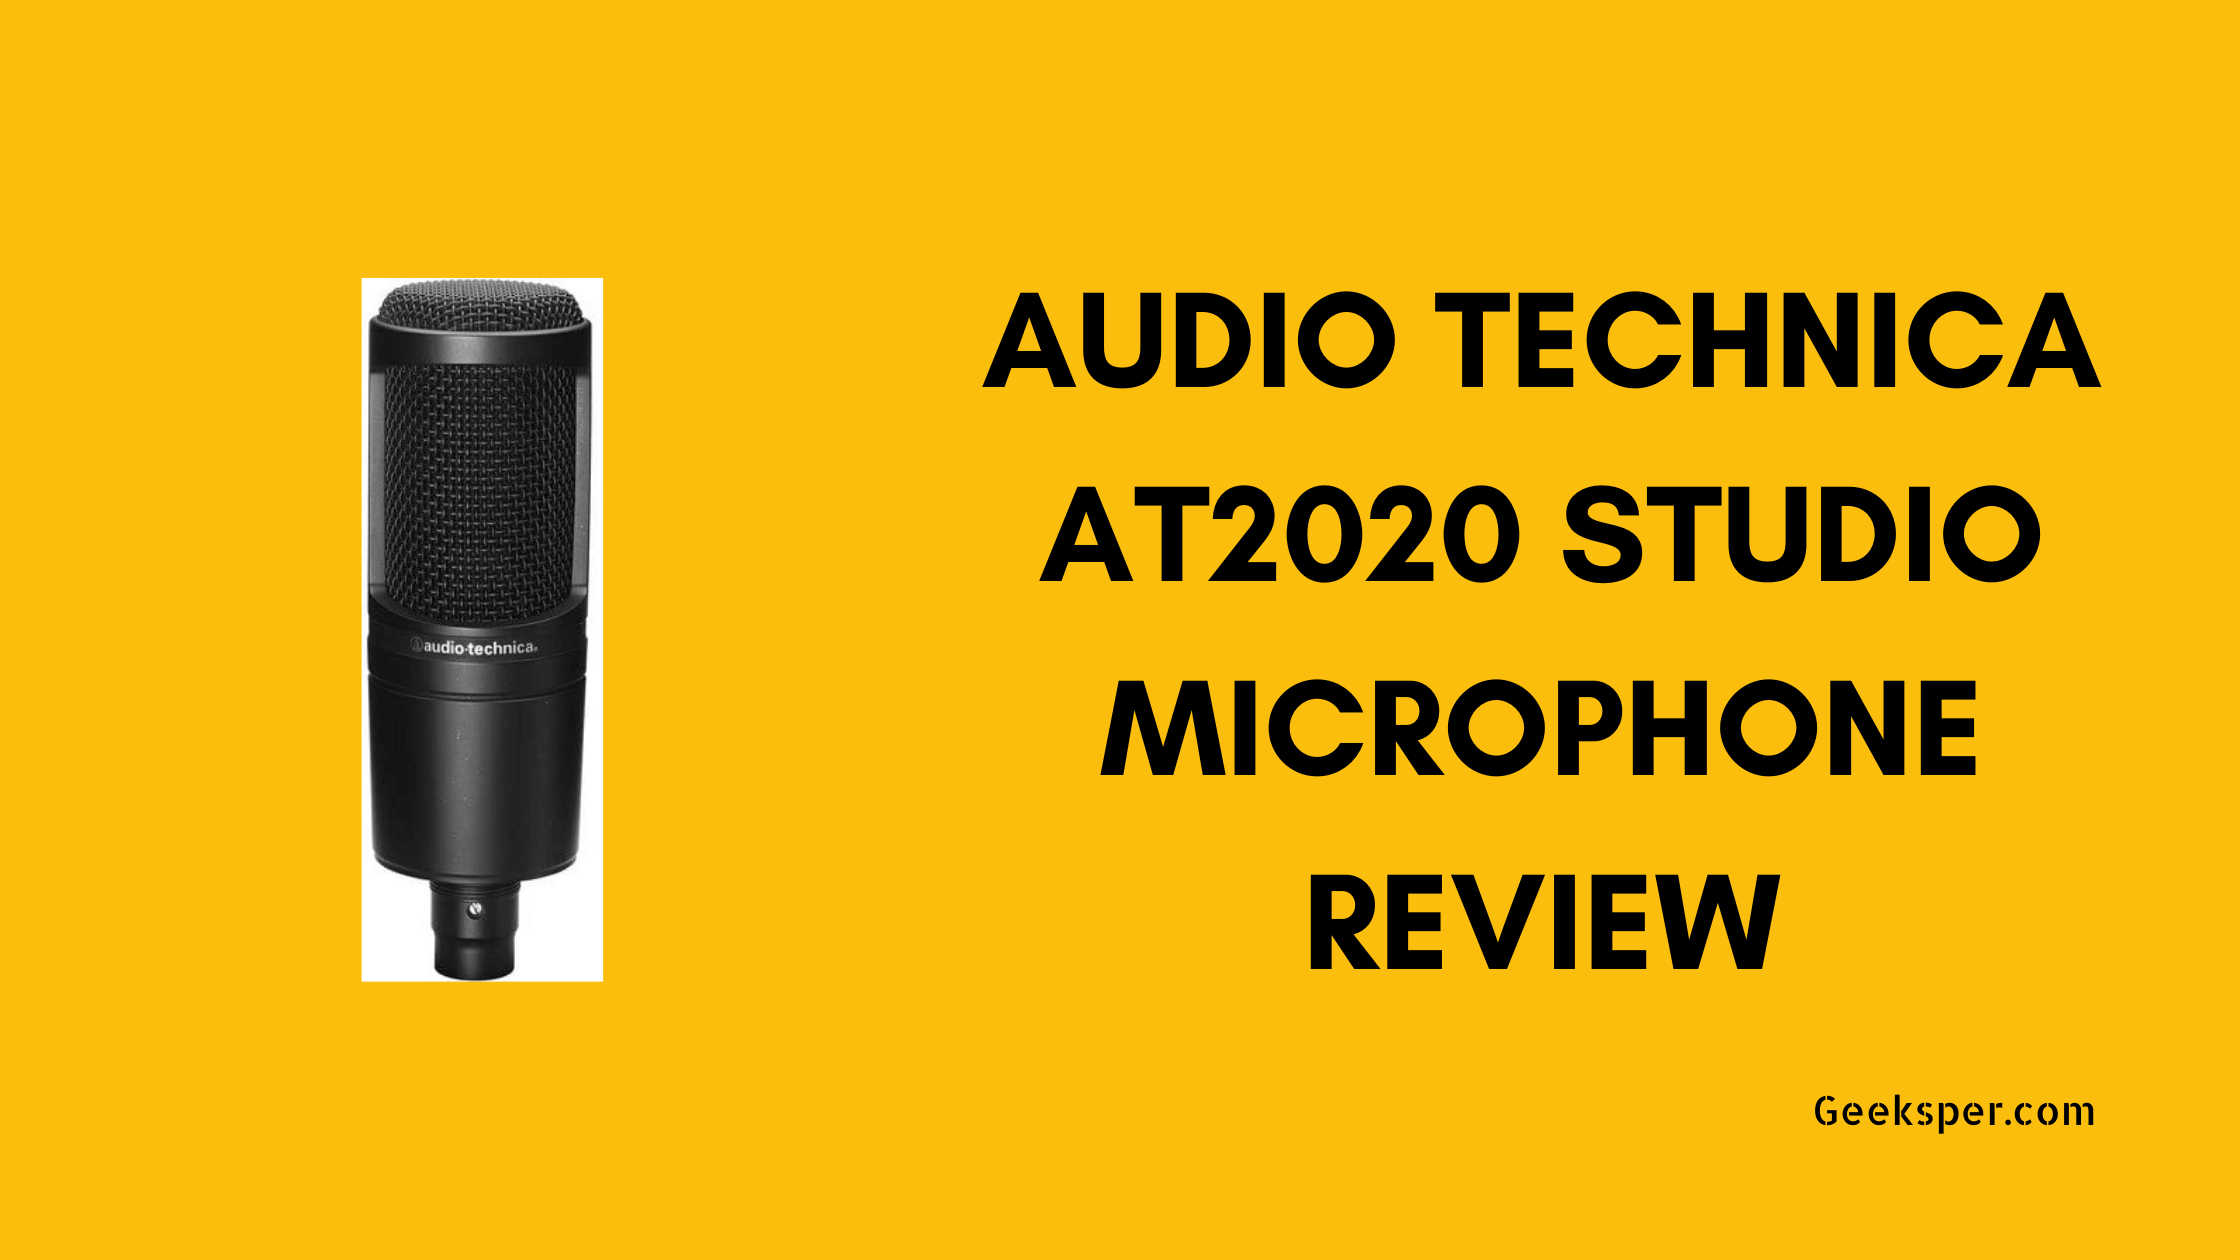 Audio Technica AT2020 Studio Microphone Review